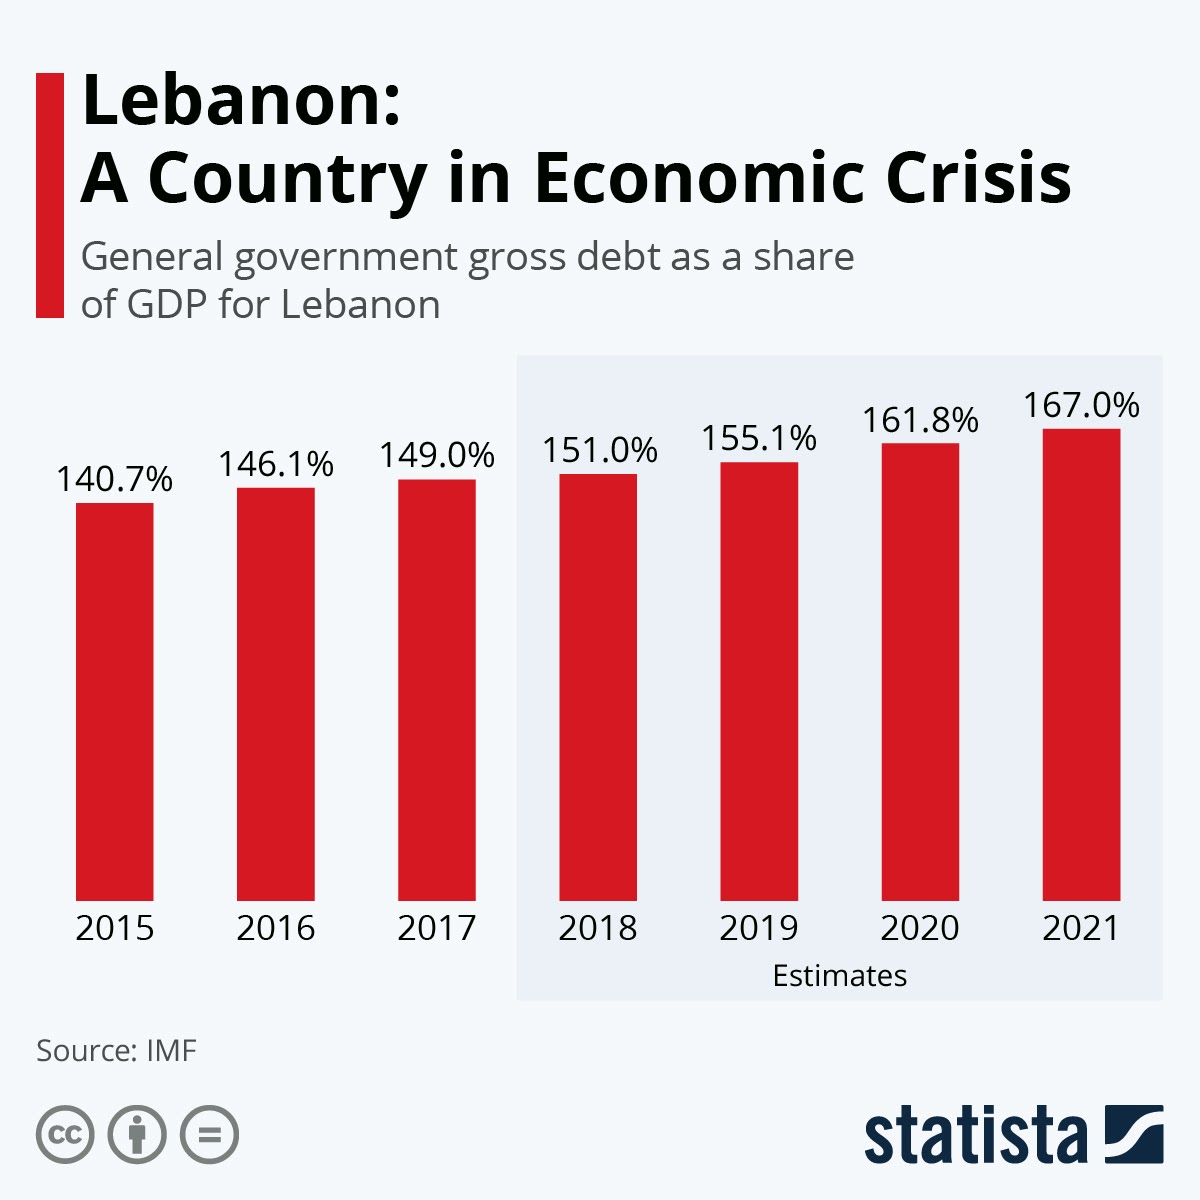 Lebanon: A Country in Economic Crisis # Infographic